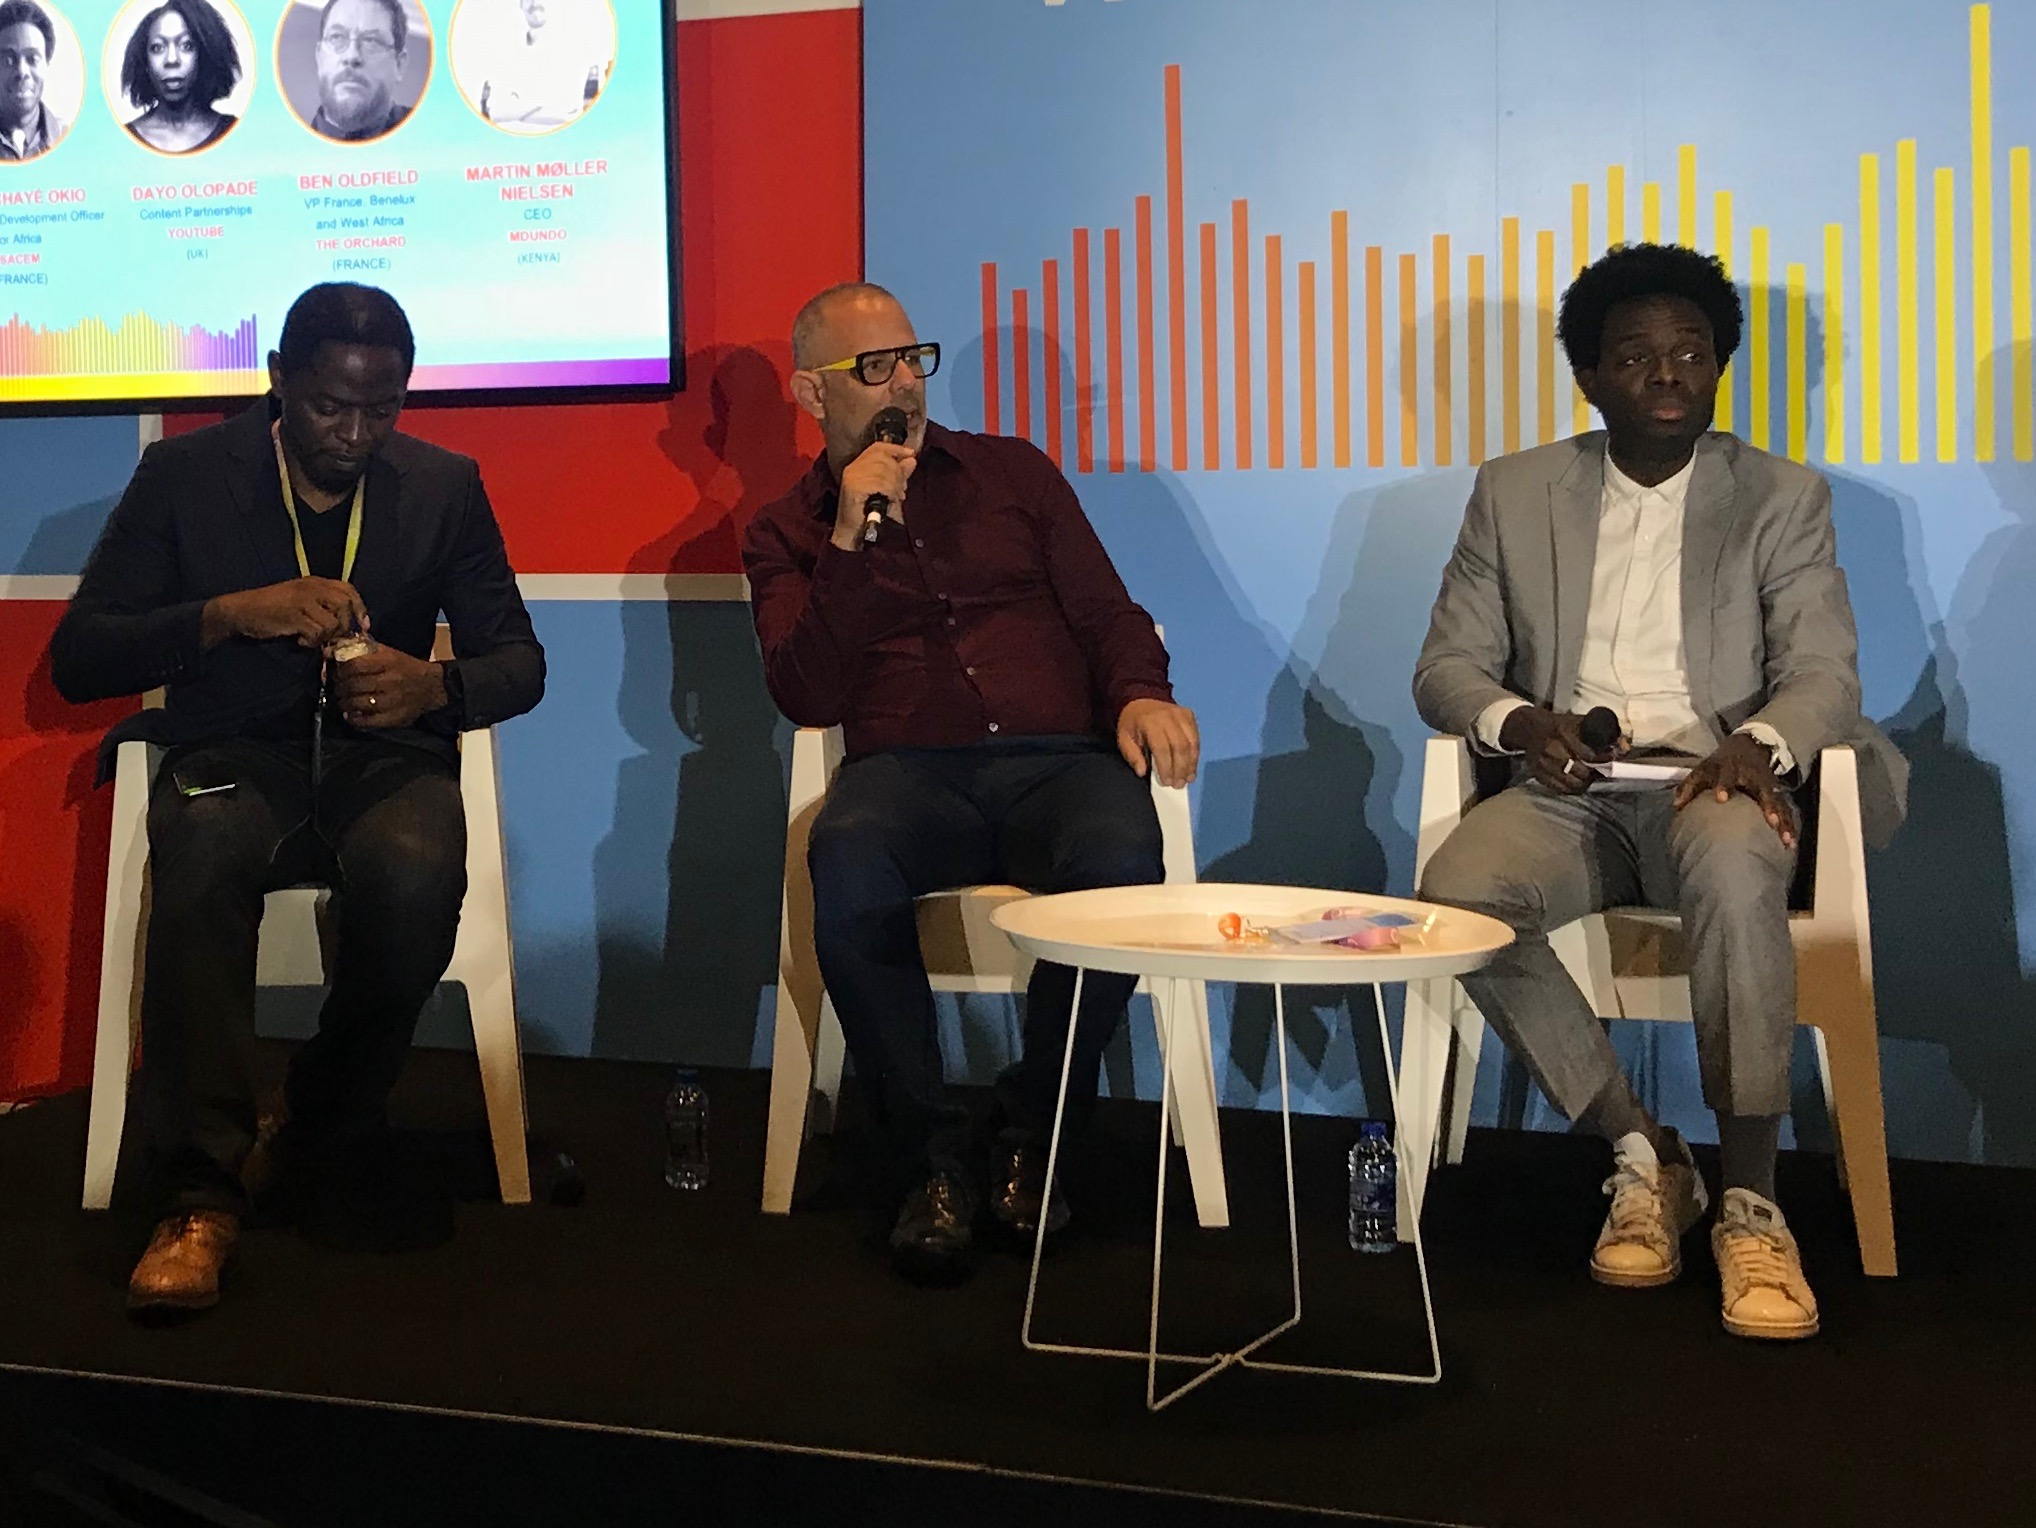 Africa's music opportunity: 'One thing you have to have is